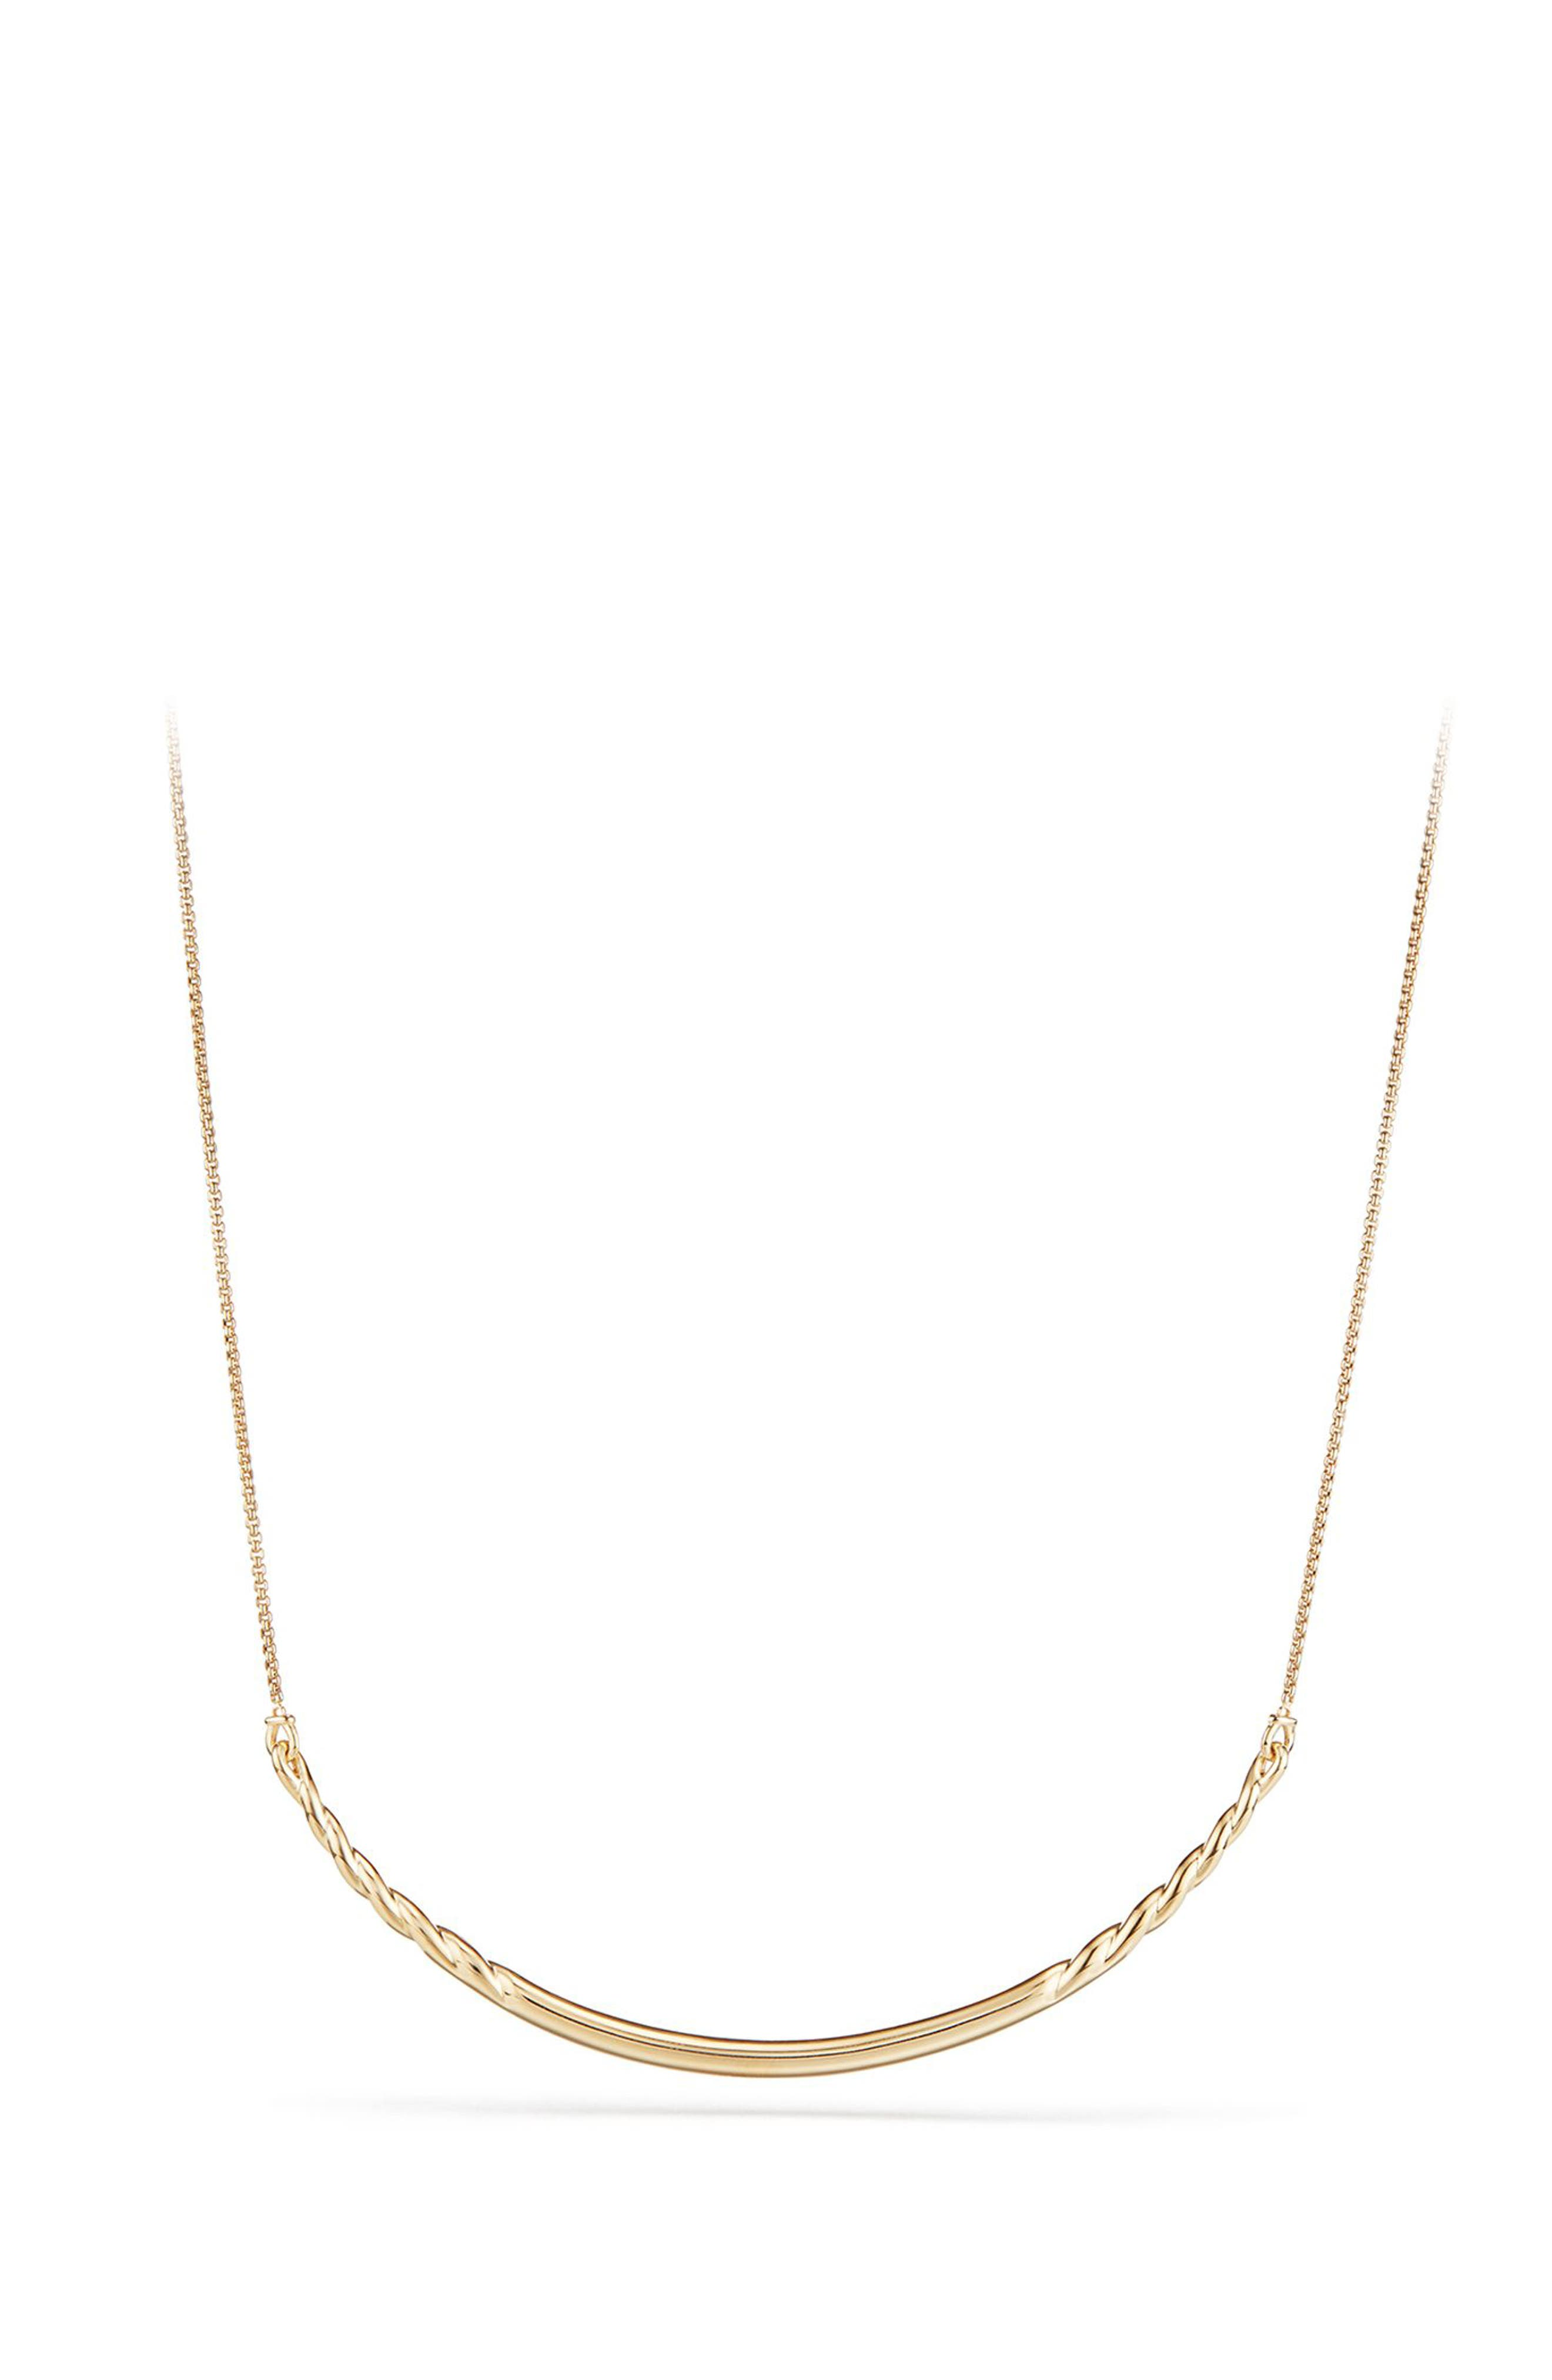 Pure Form Collar Necklace in 18K Gold,                             Main thumbnail 1, color,                             YELLOW GOLD